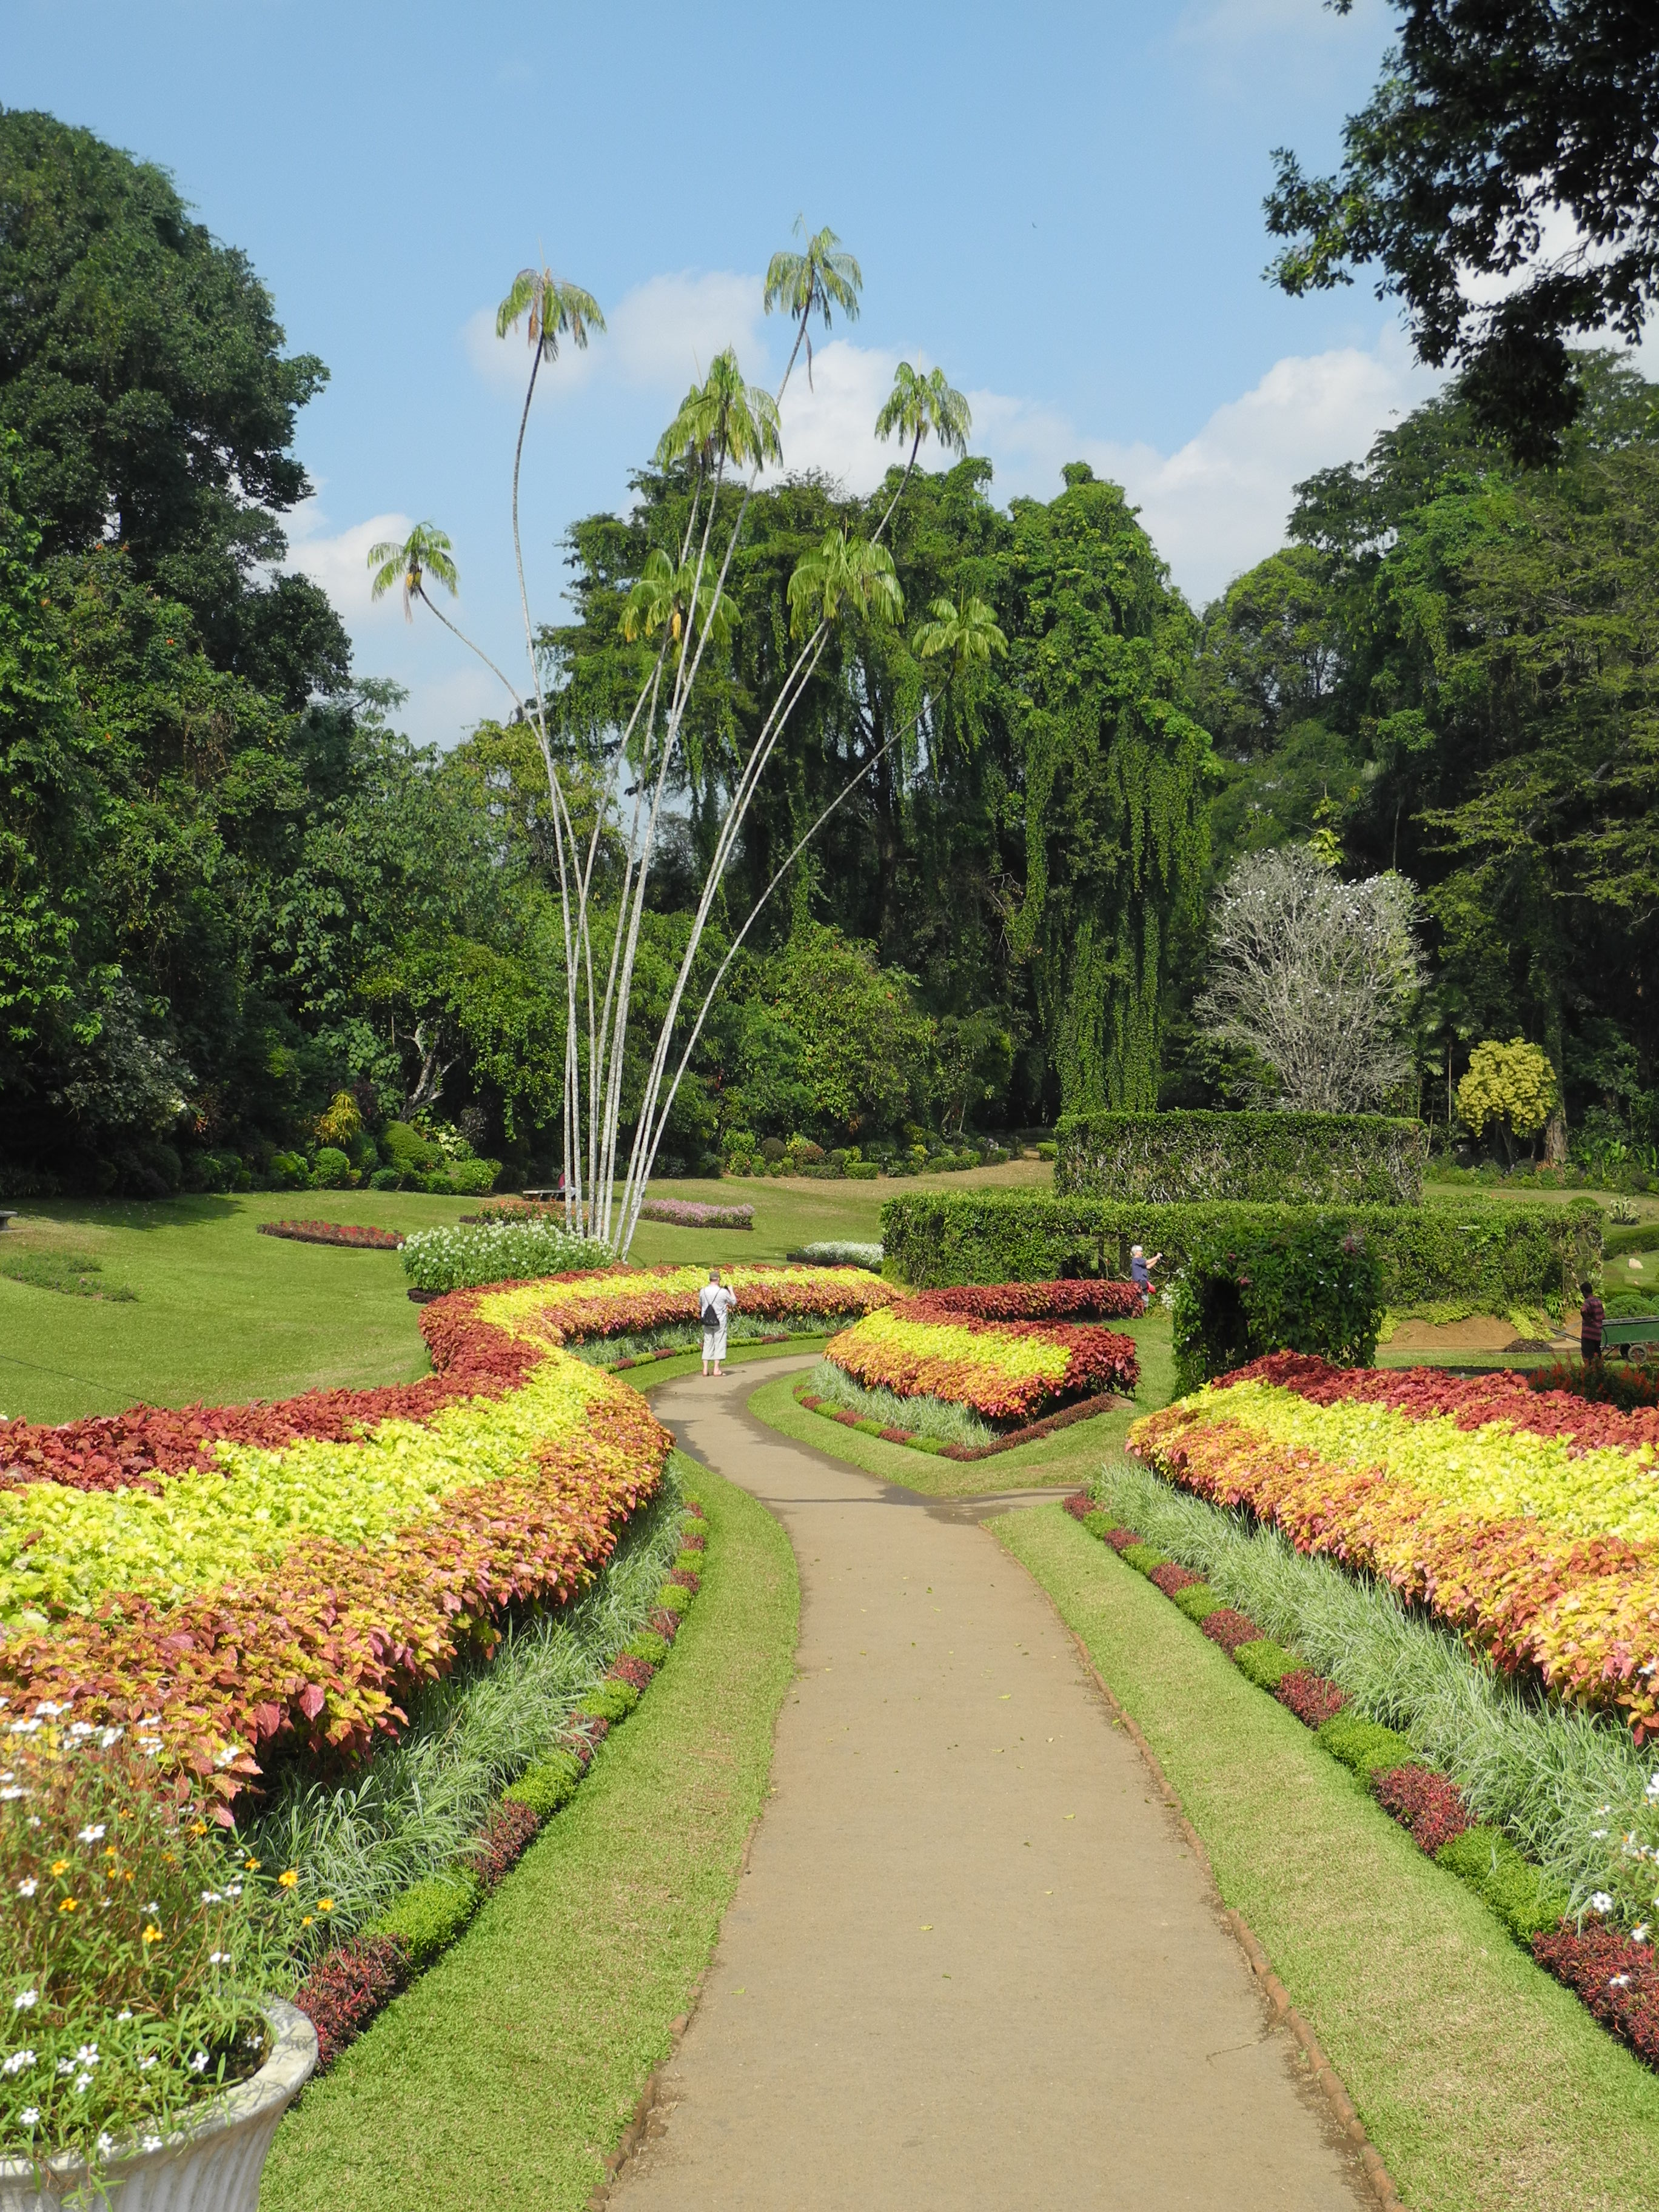 Royal botanic garden sri lanka the other side of the for Sri lankan landscaping plants